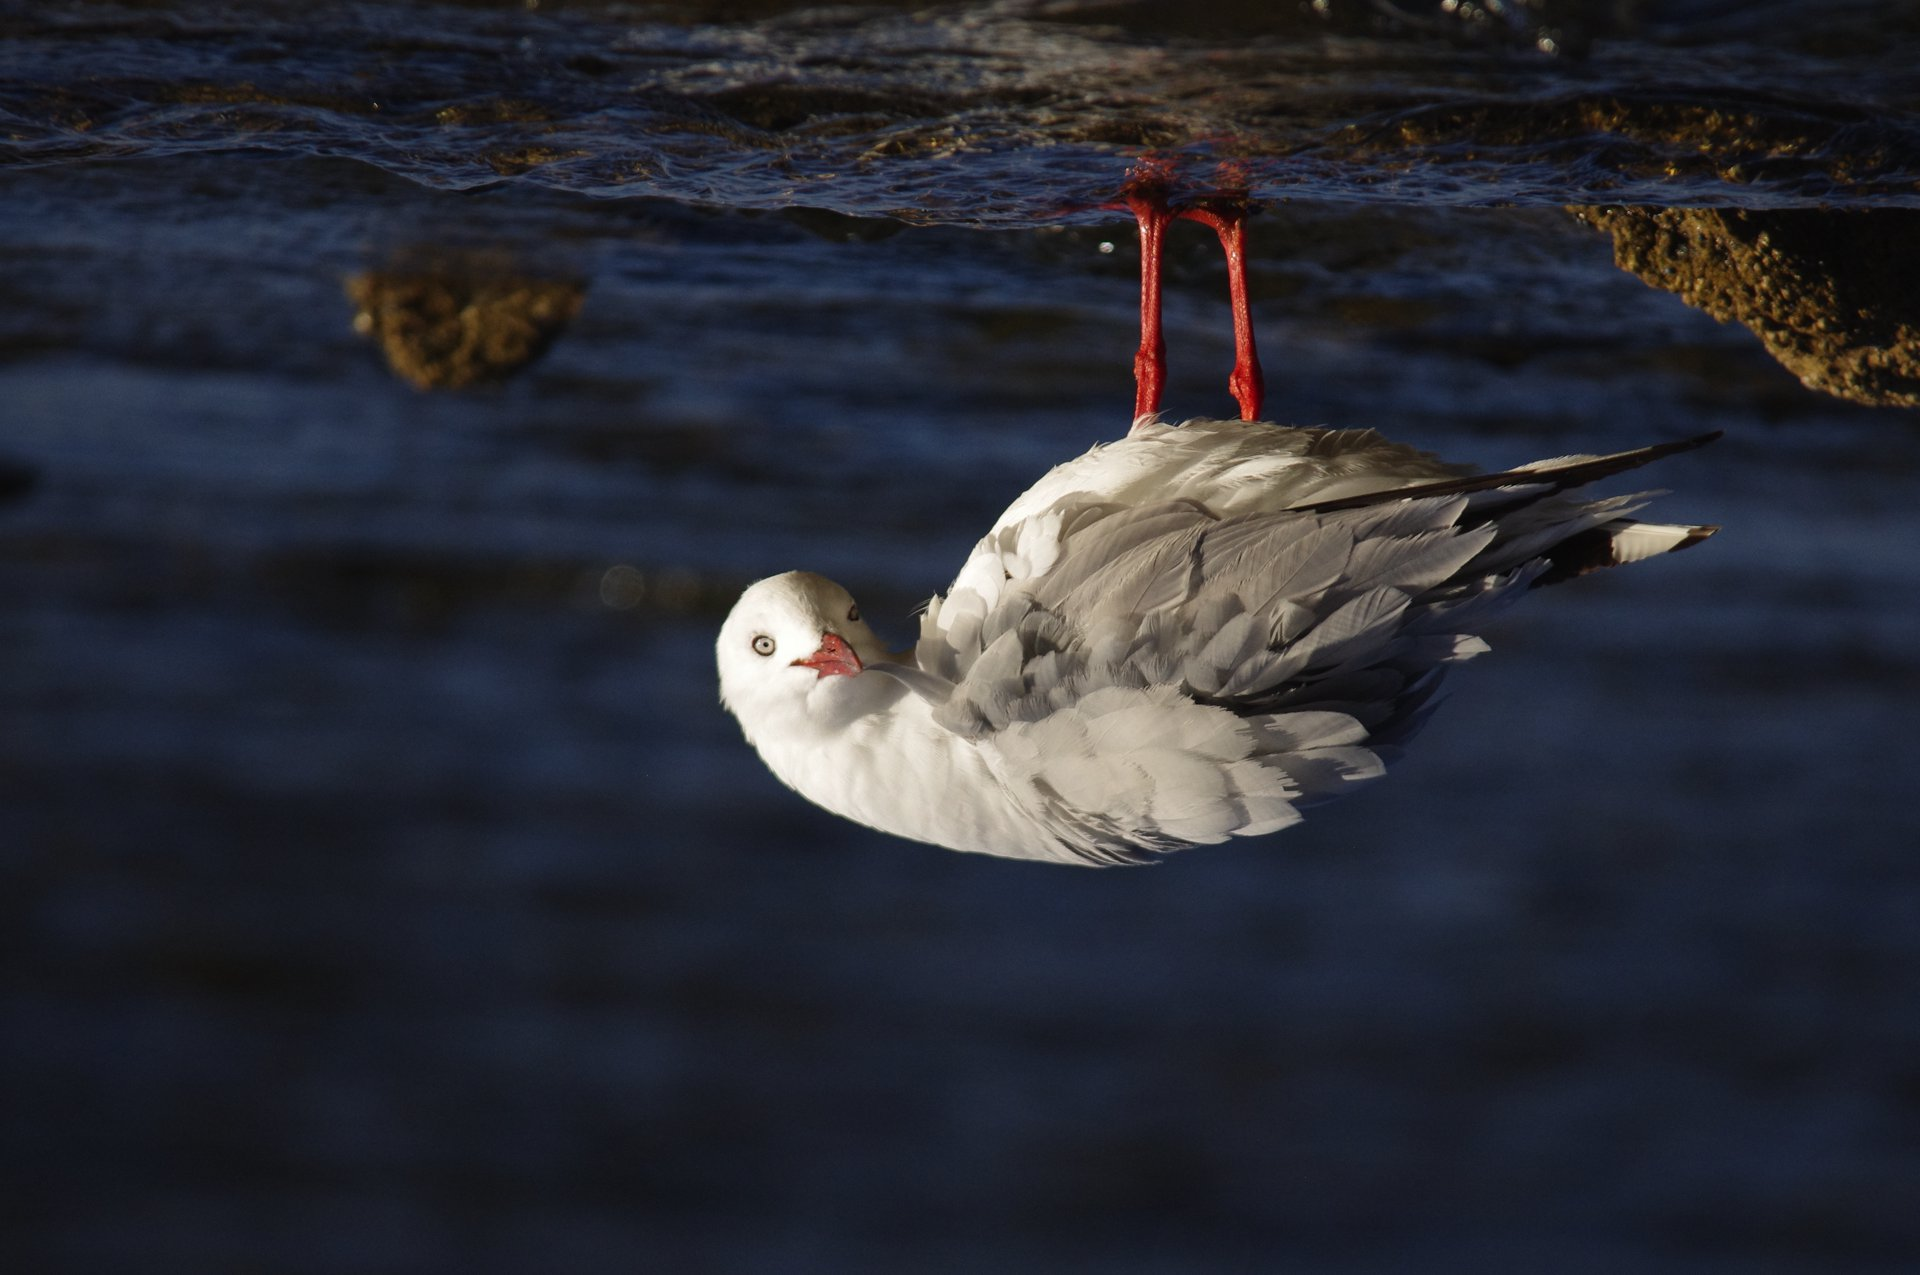 When is a seagull not a seagull? – Connected to Port Phillip